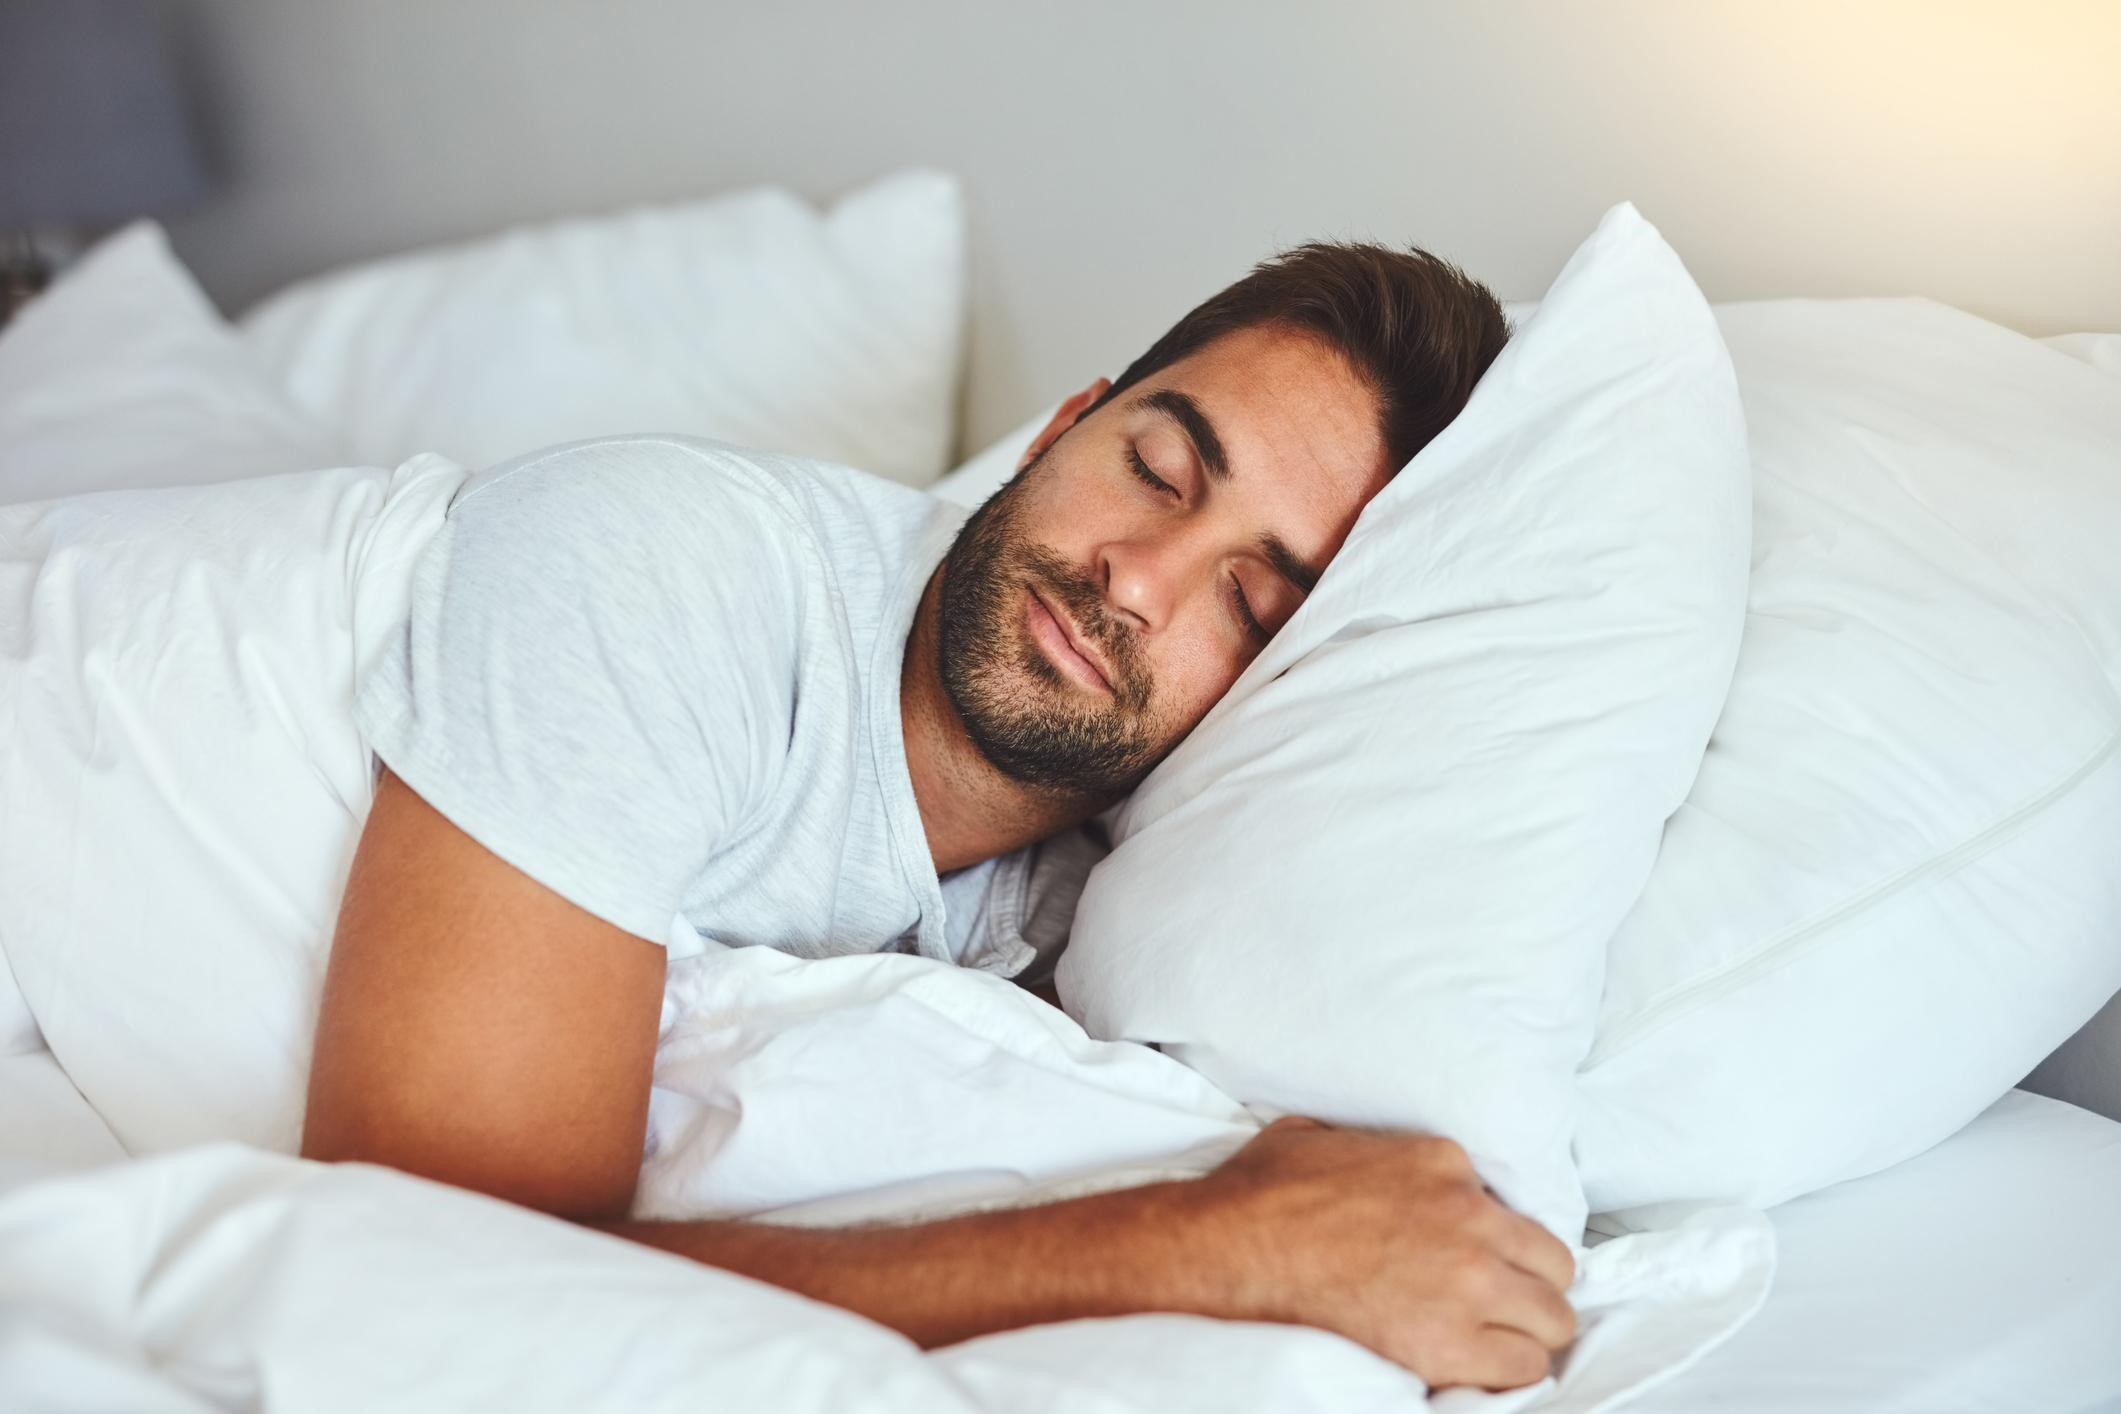 How to Sleep Better During a Pandemic